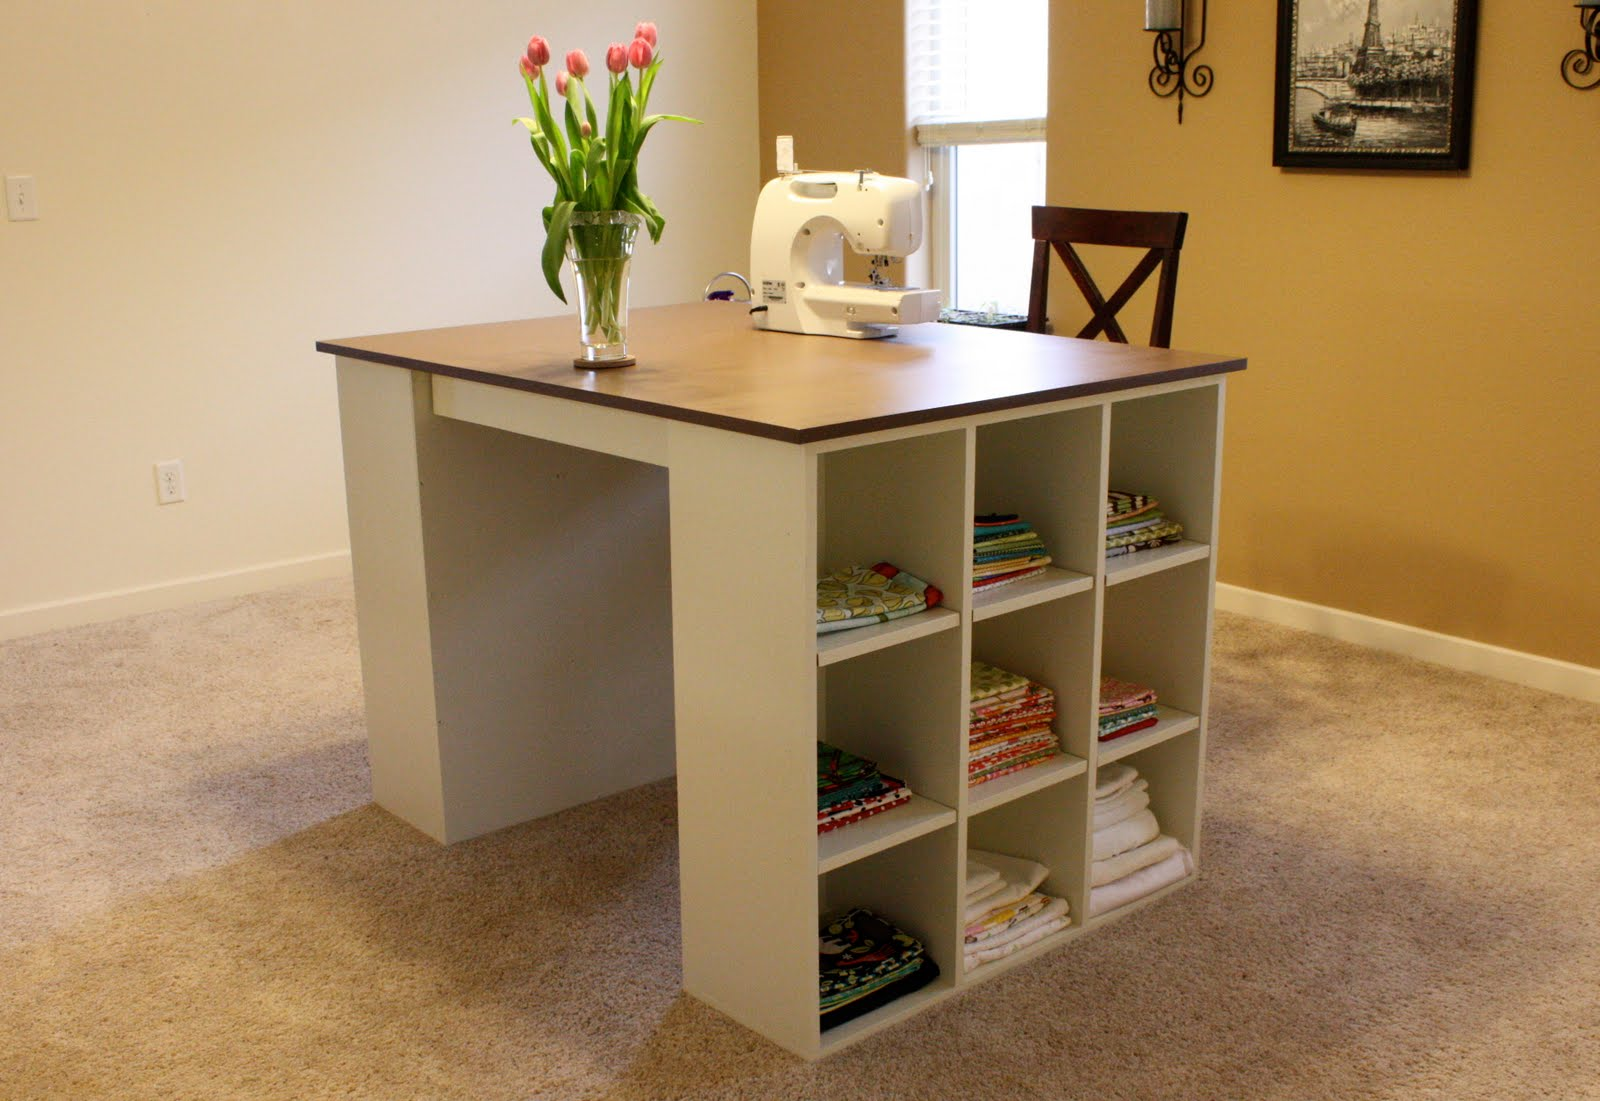 Craft table with storage costco table designs craft table with storage costco designs solutioingenieria Choice Image